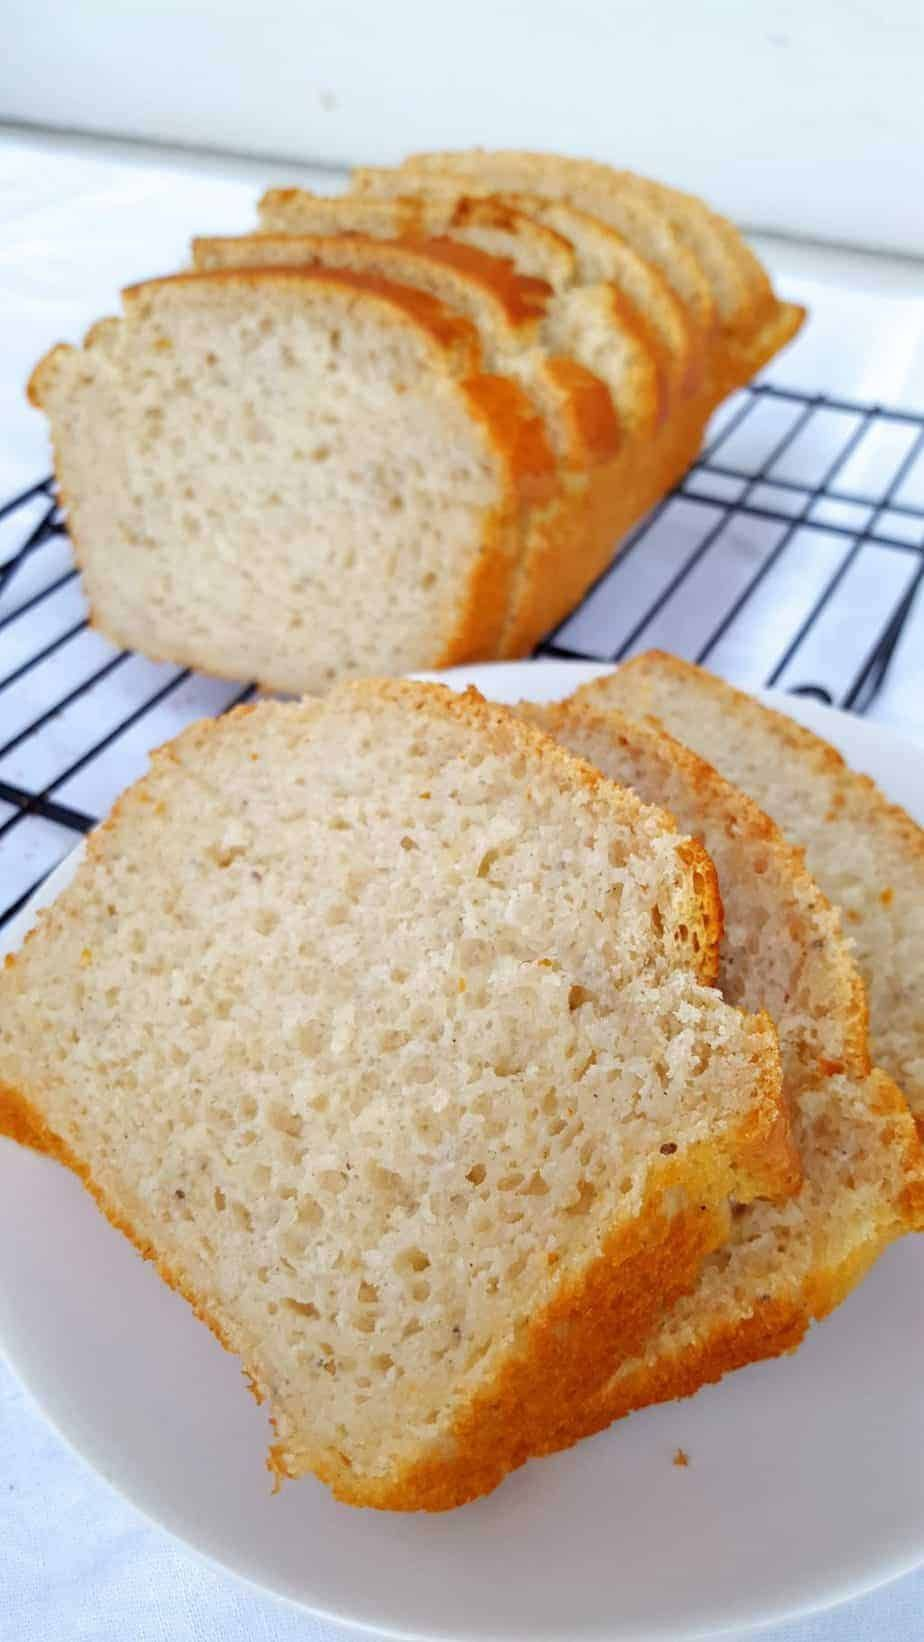 Amazing Gluten Free White Bread Without Xanthan Gum Recipe